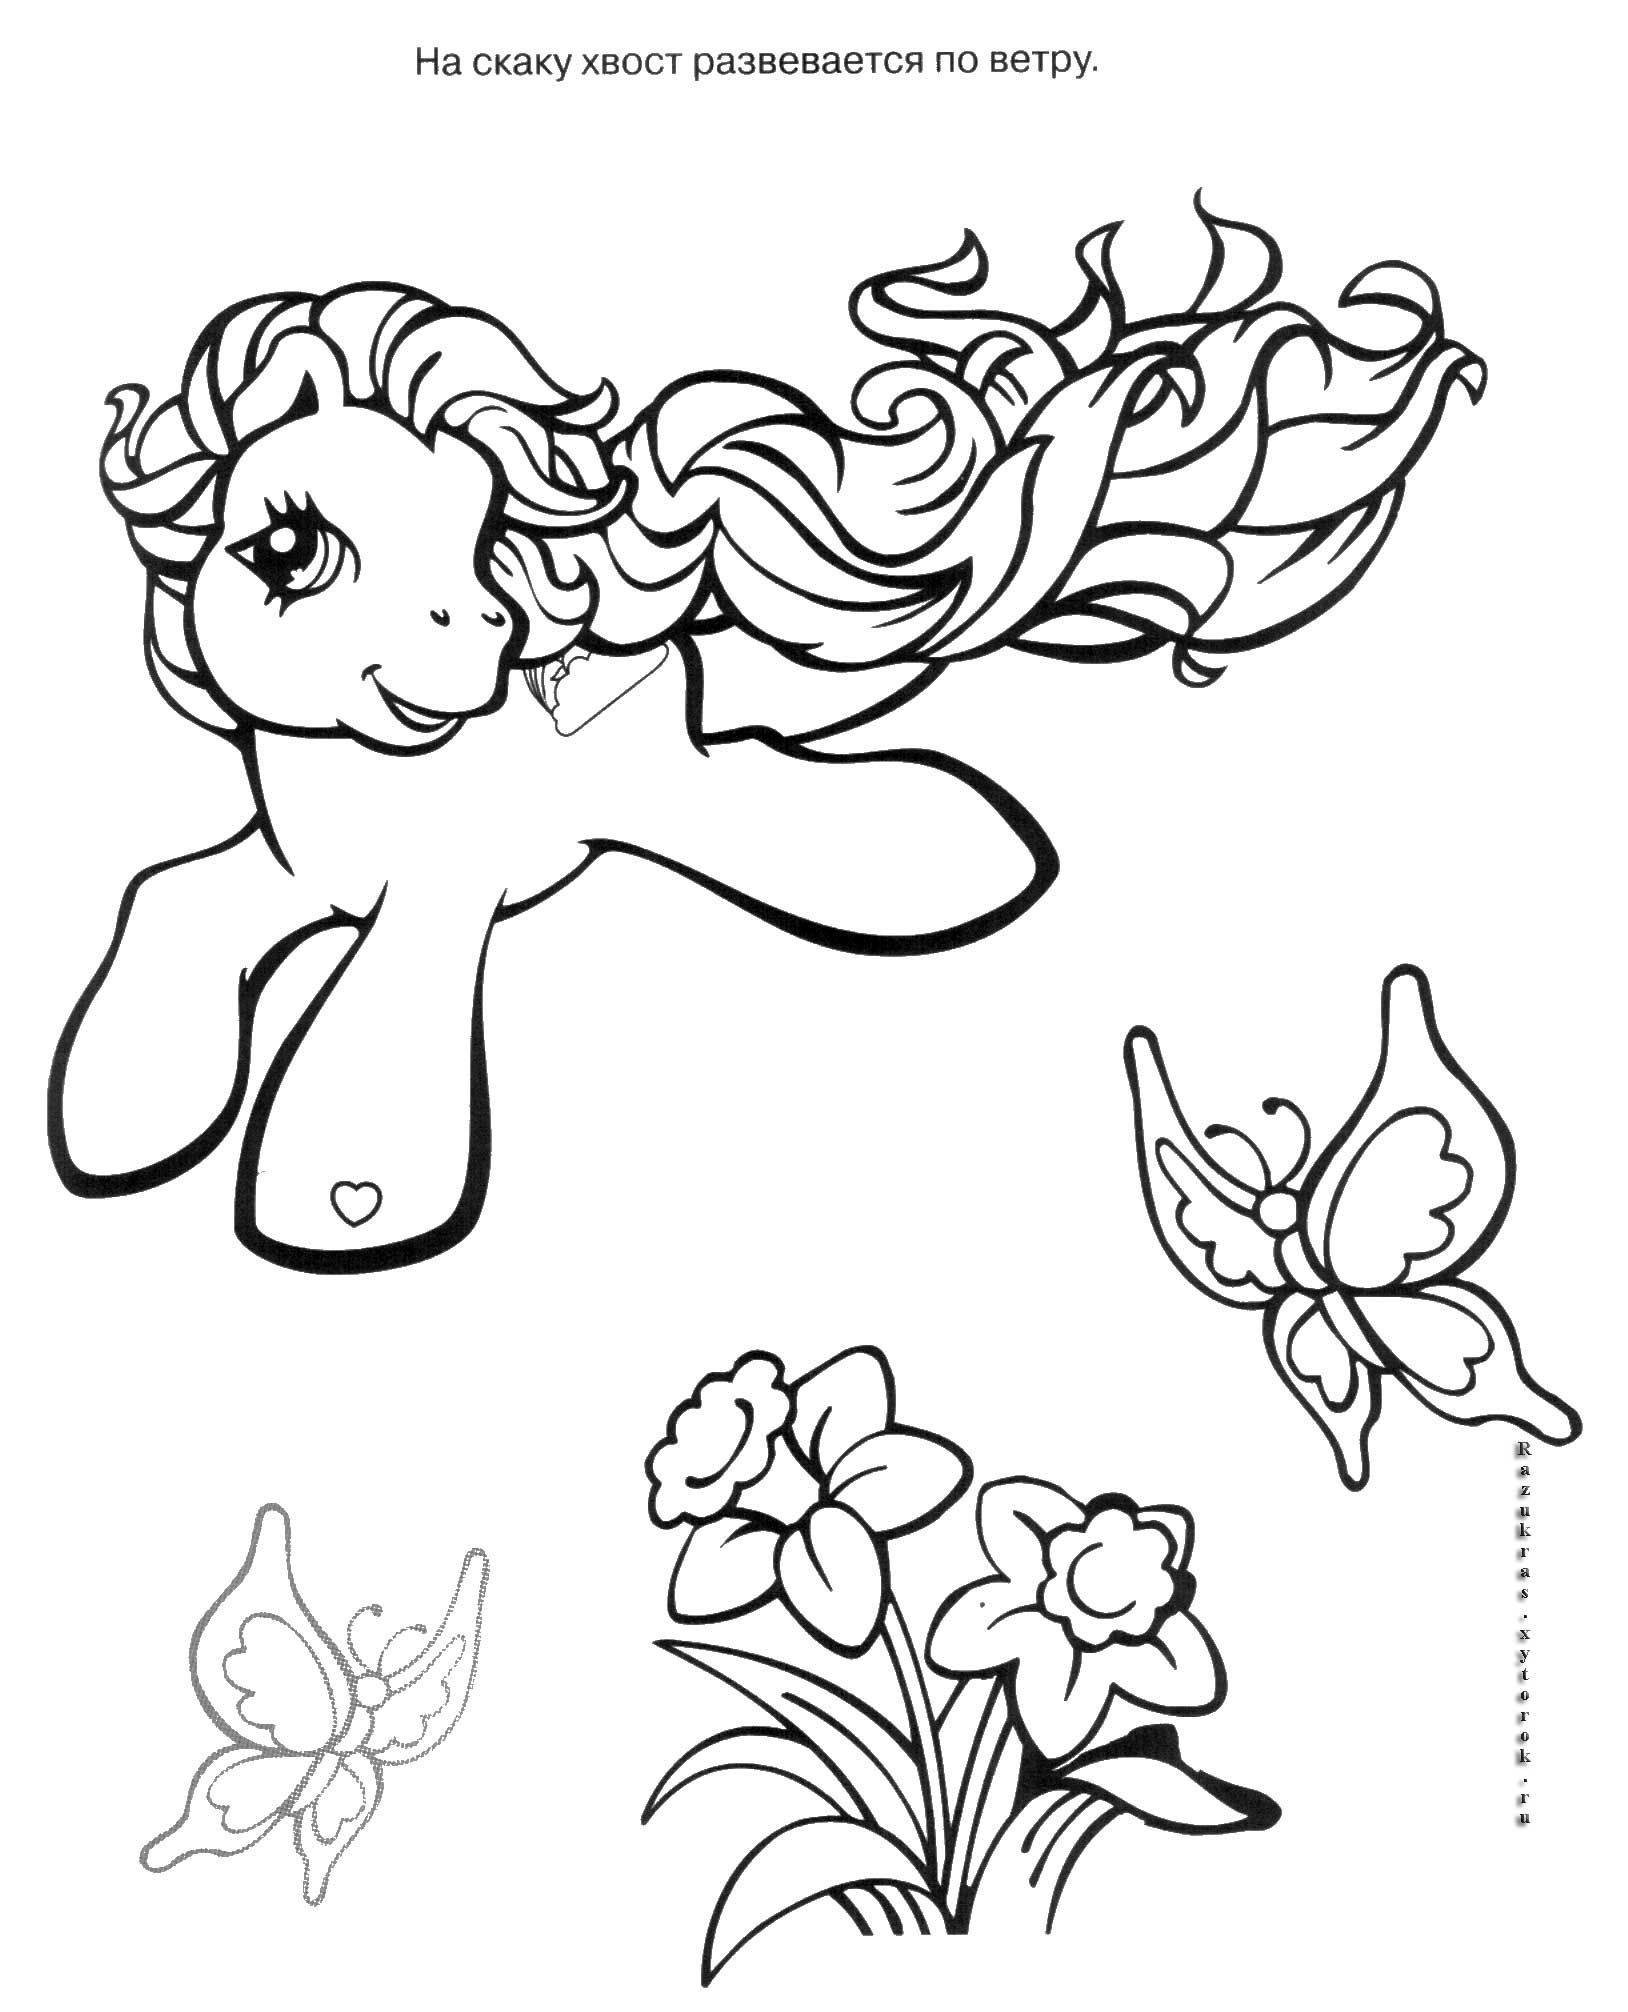 Minty My Little Pony Coloring Page Mewarnai Gambar My Little Pony